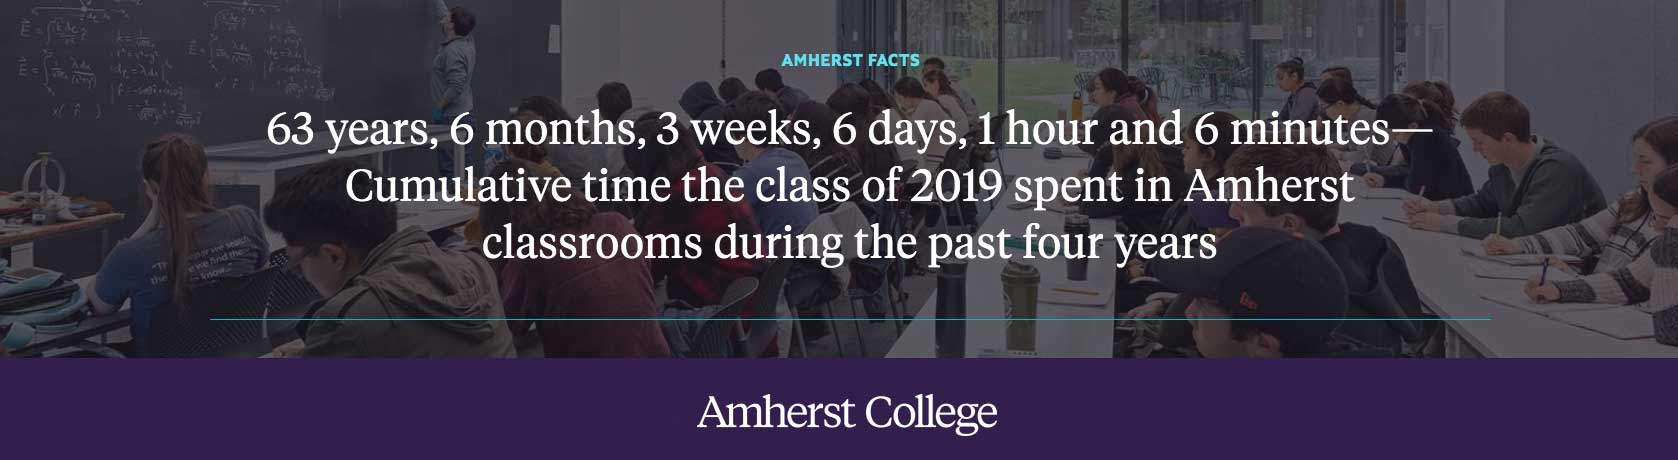 Commencement Fact: 63 years, 6 months, 6 days, 1 hour and 6 minutes: cumulative time in Amherst classrooms over the past 4 years